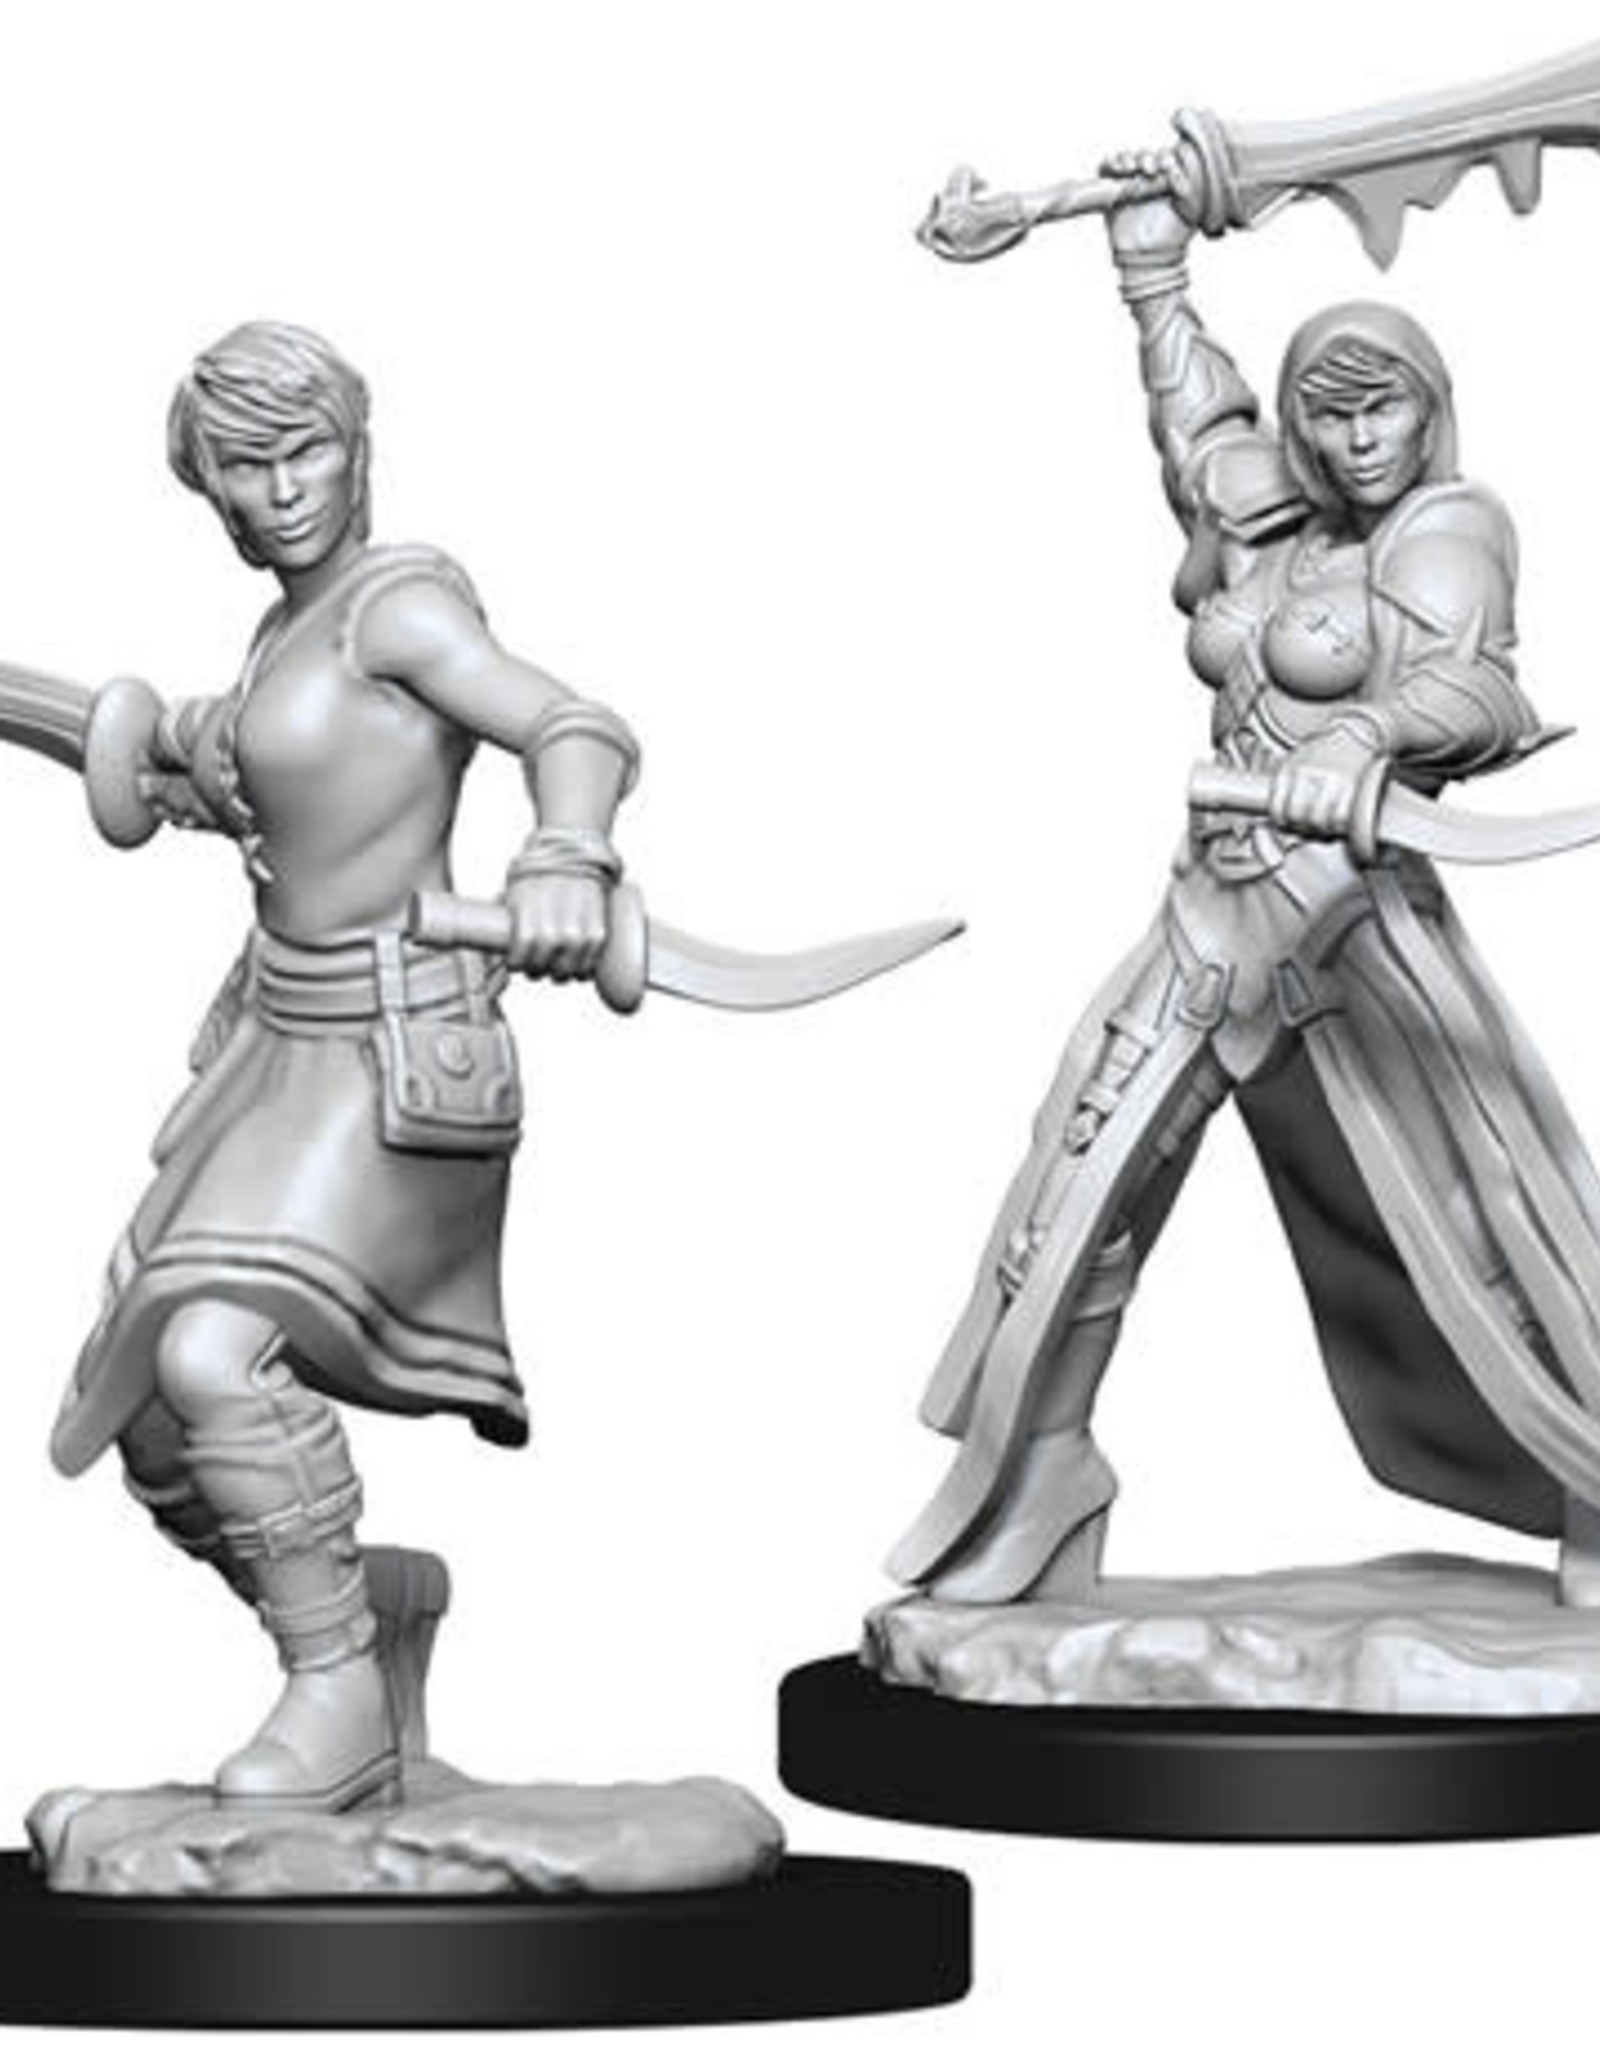 WizKids D&D Nolzur Human Rogue (She/Her/They/Them)